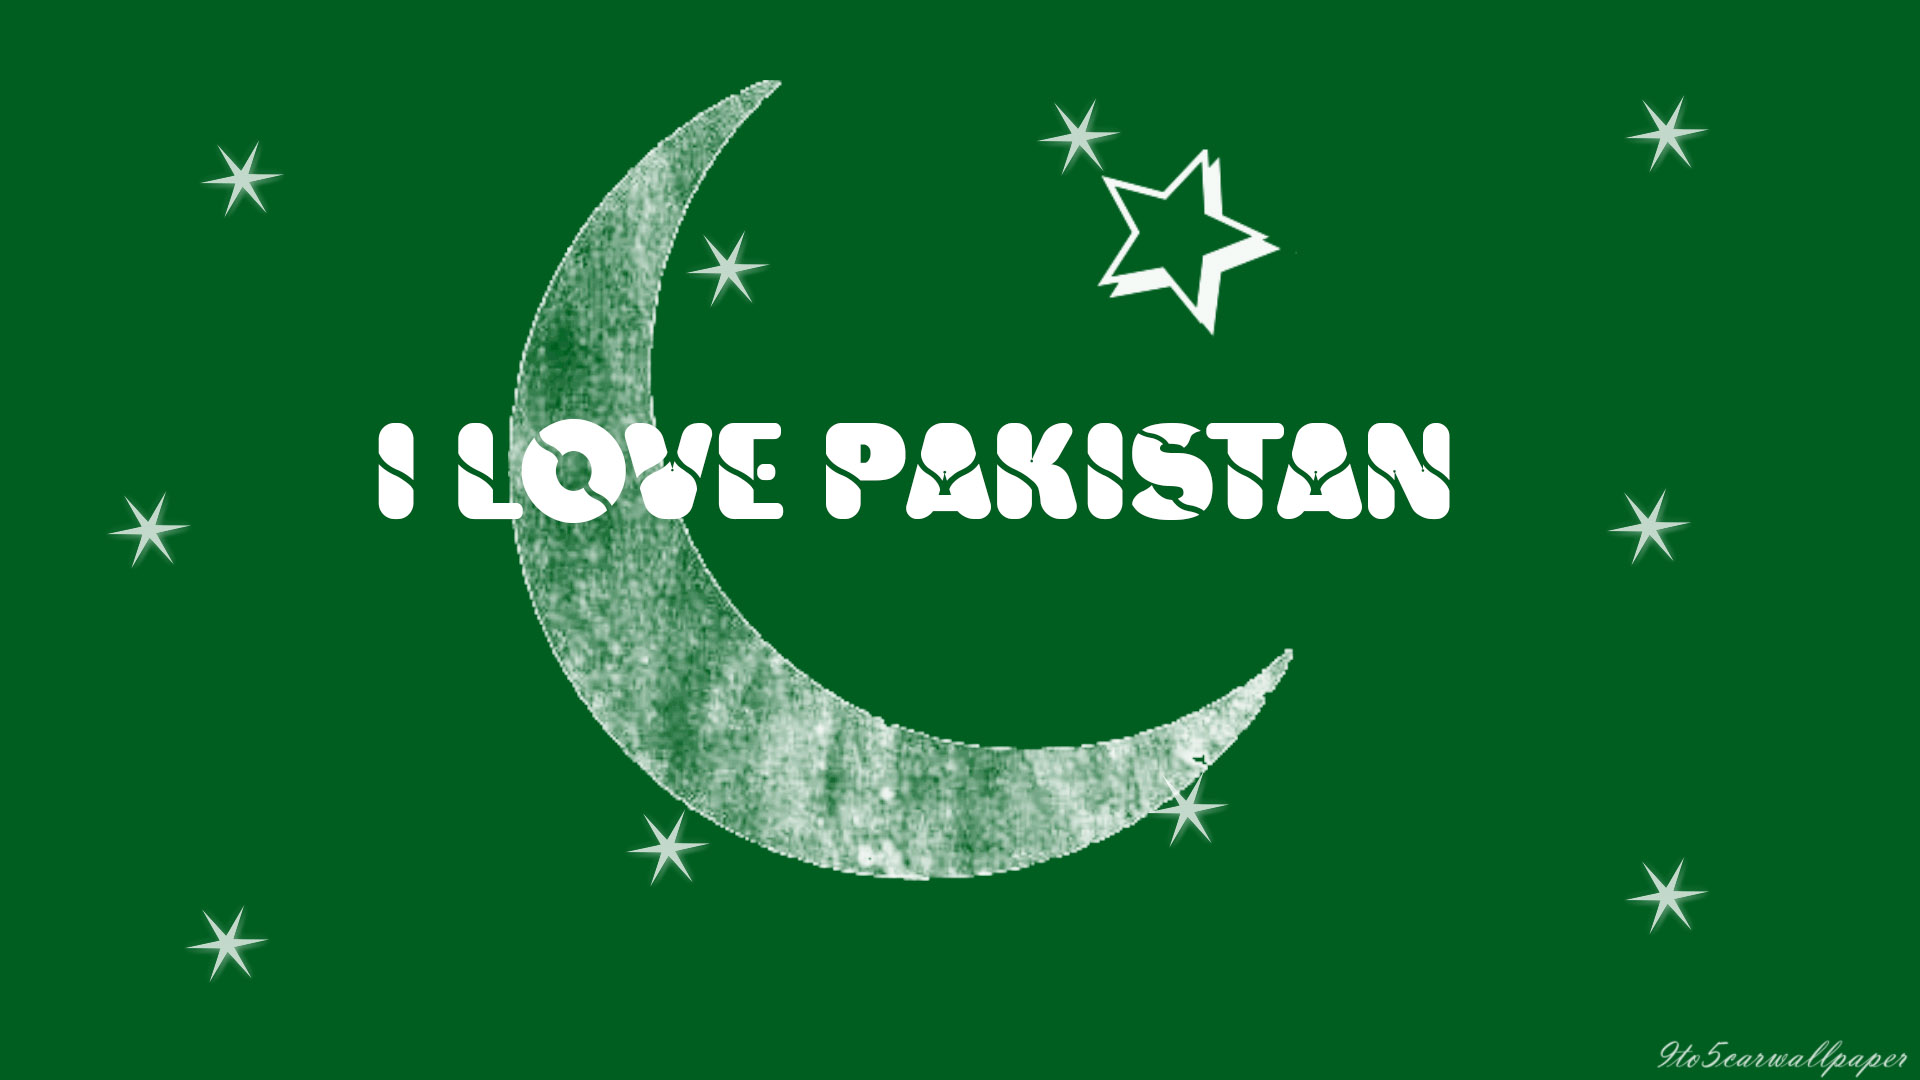 I Love Pakistan Independence Day cards & Hd Wallpapers